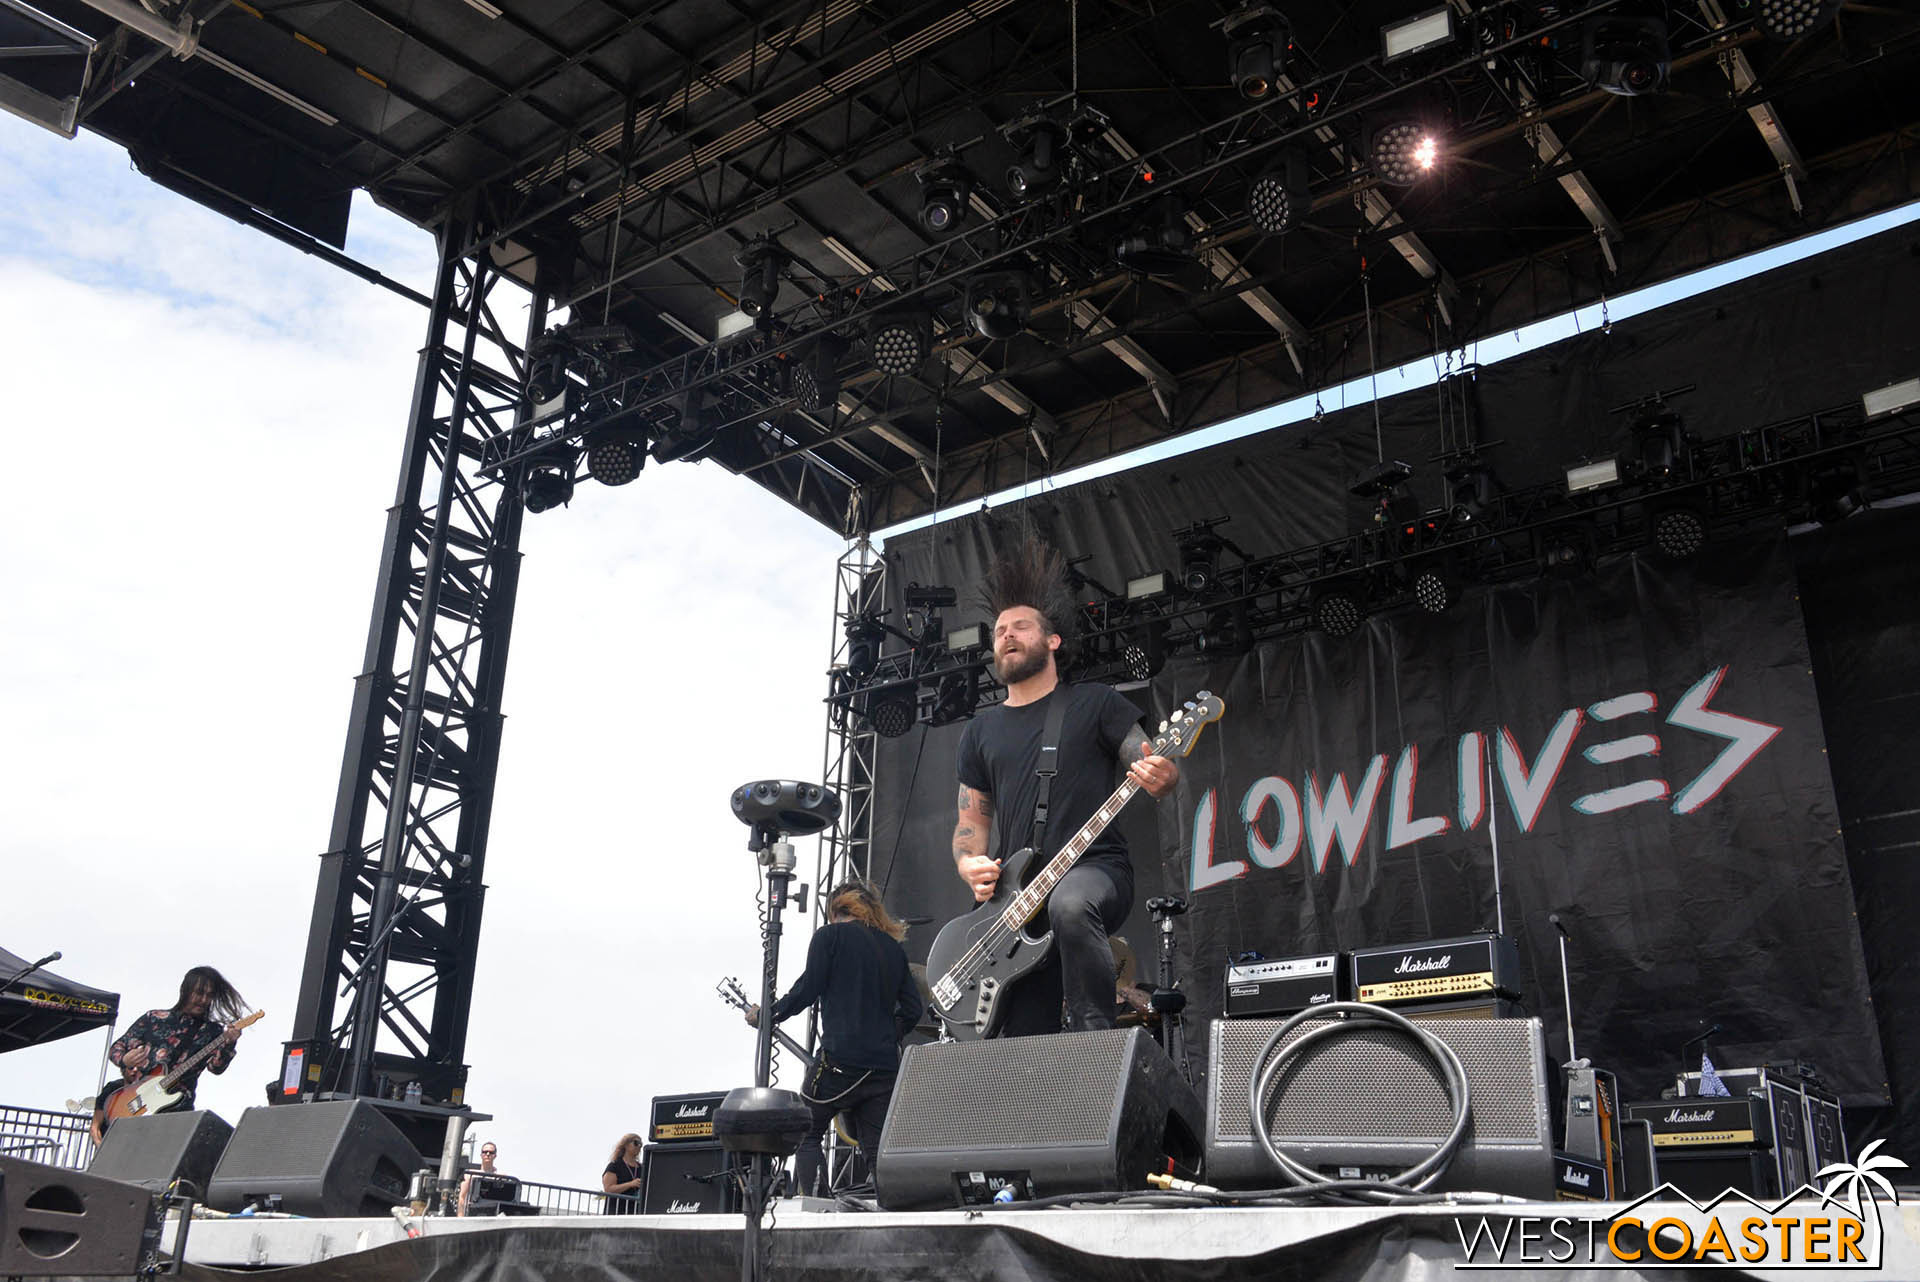 Lowlives perform at Back to the Beach festival..